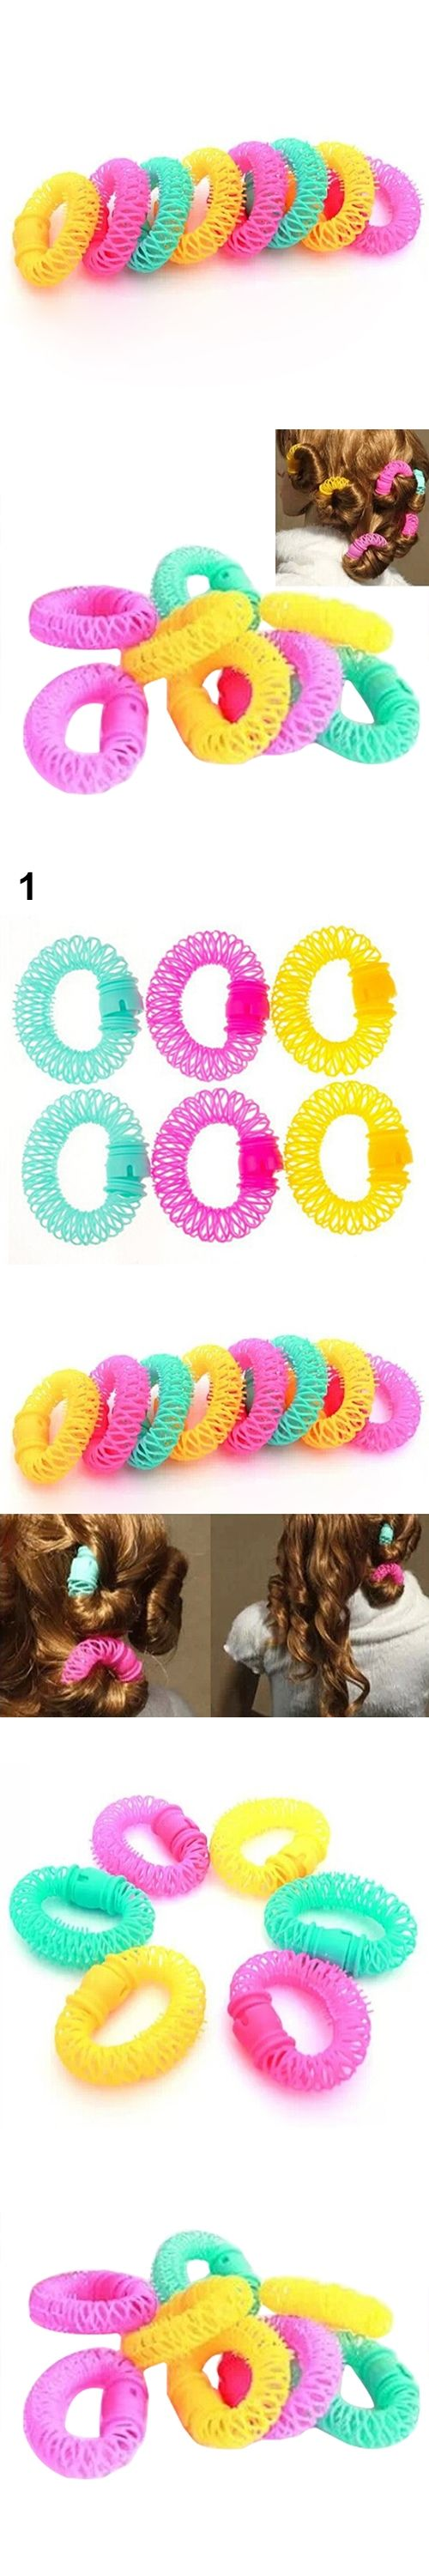 2016 6/8Pcs Convenient Hair Magic Curler Rollers Spiral Curls Hair Styling DIY Tools BGSK